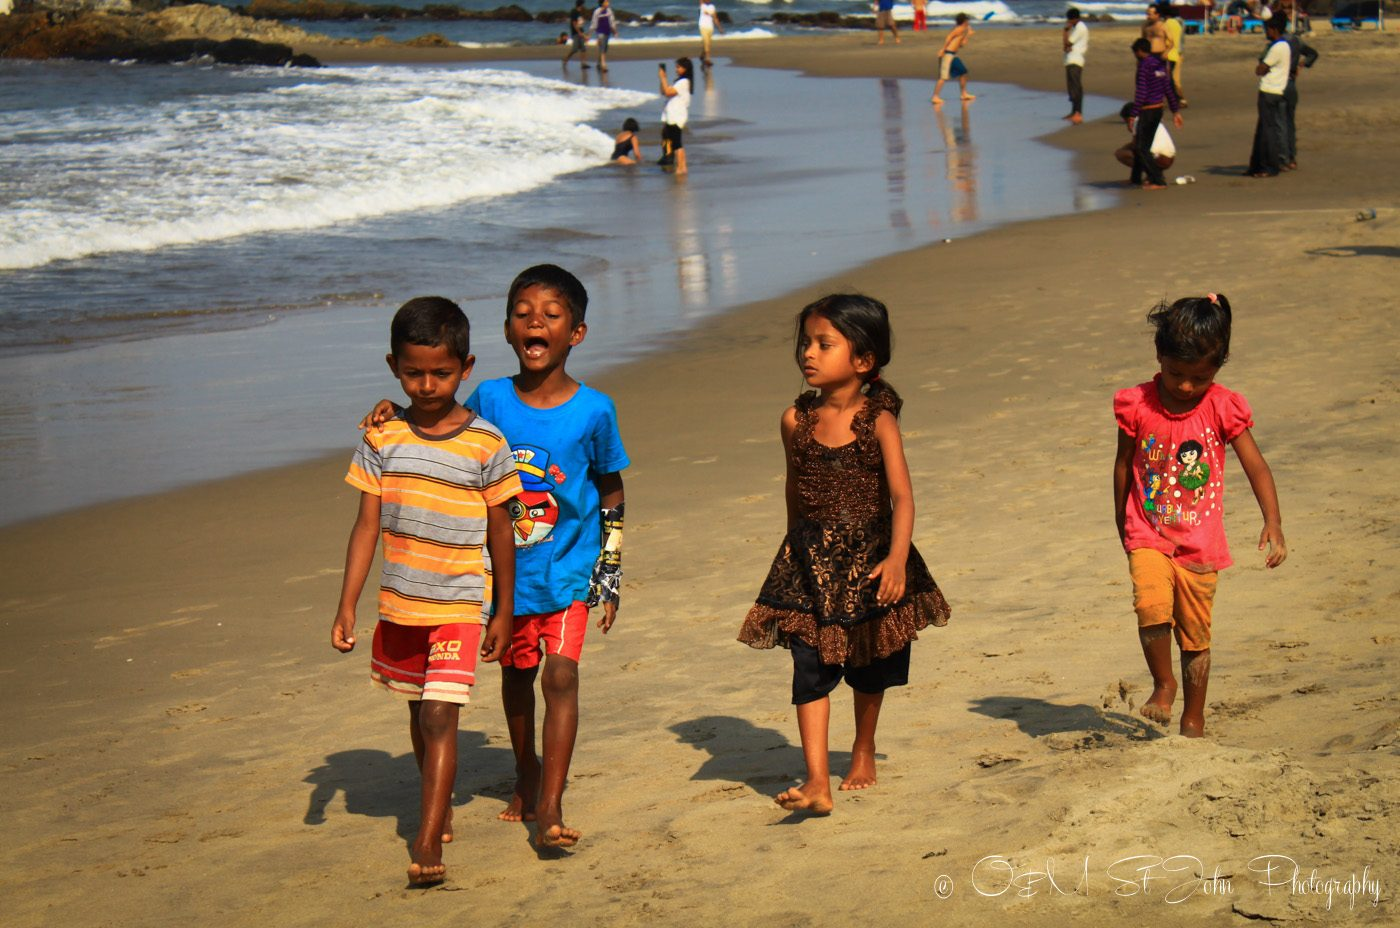 Kids on the beach in Goa, India